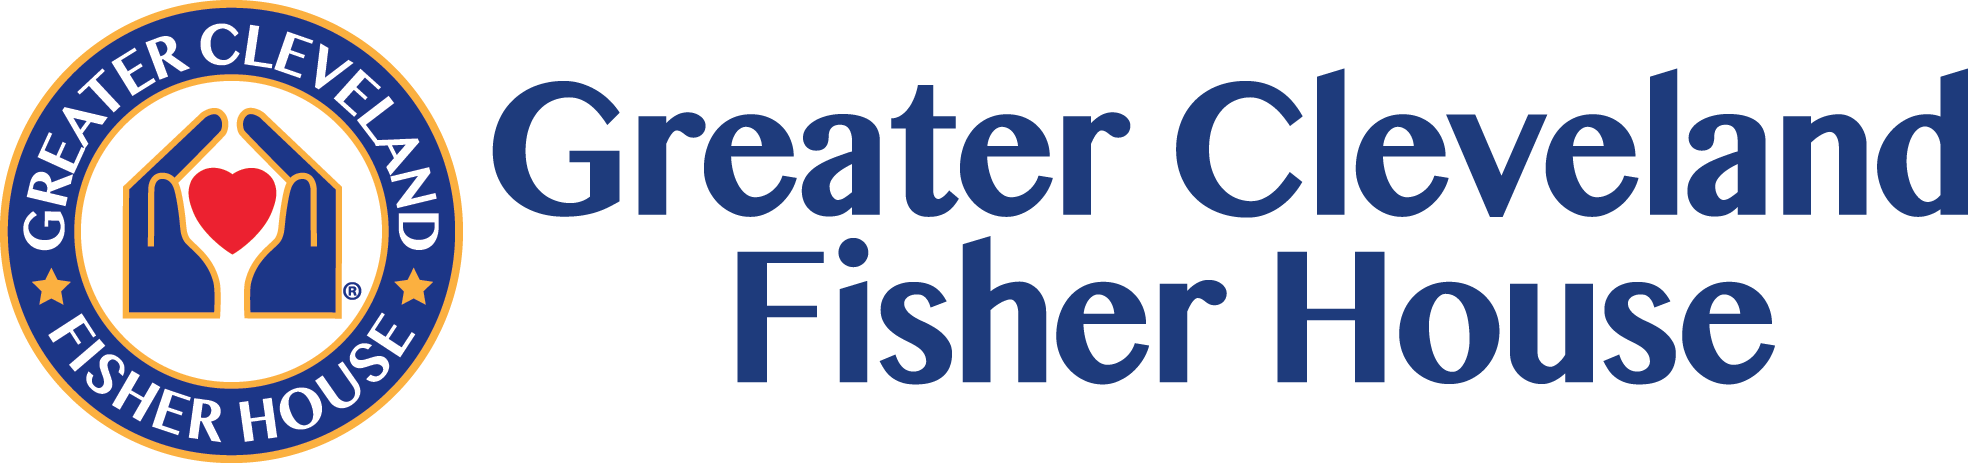 Greater Cleveland Fisher House Logo